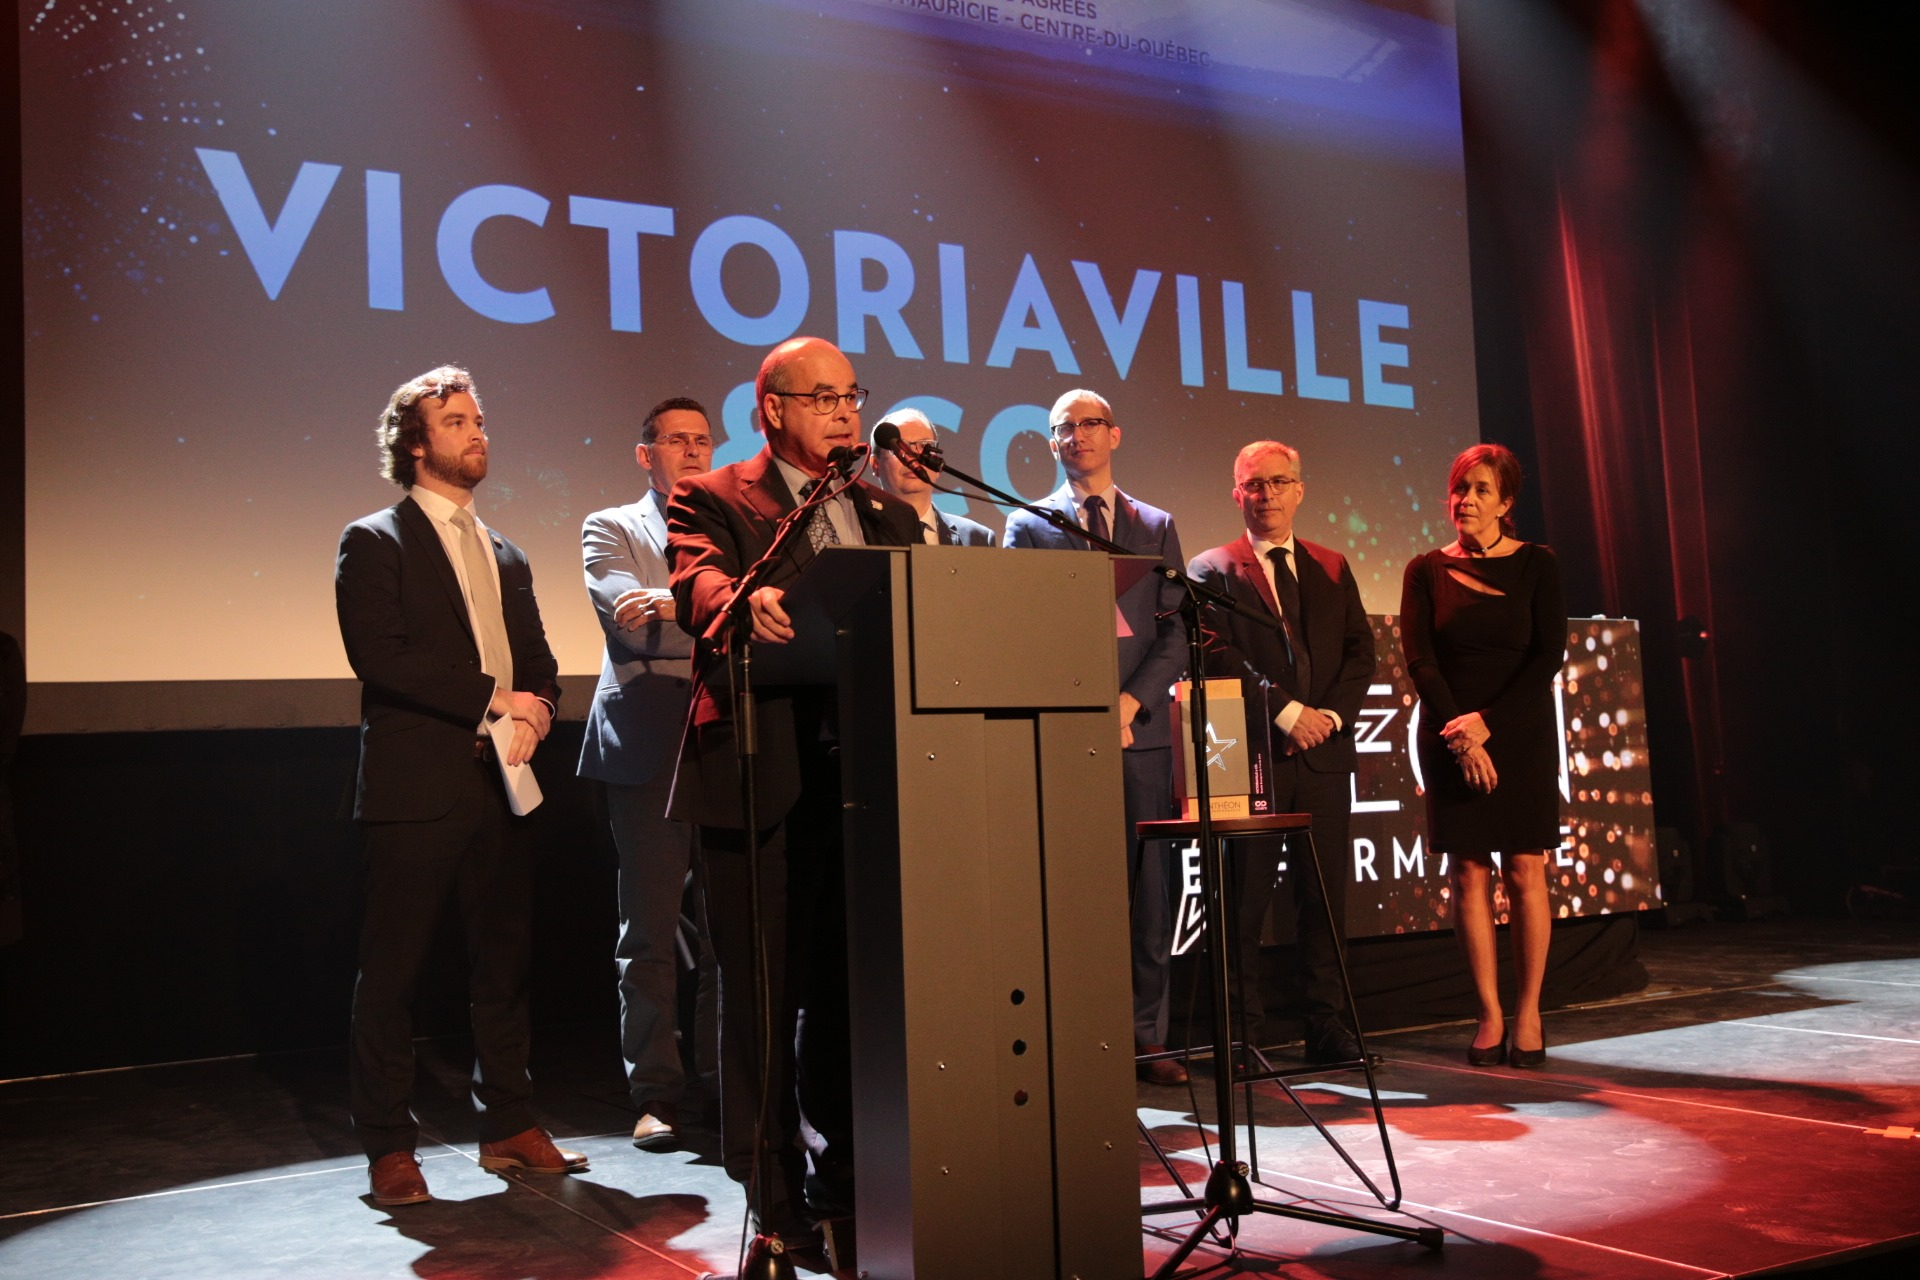 """Victoriaville & Co. has been honoured with the """"Large Company of the Year Award"""""""